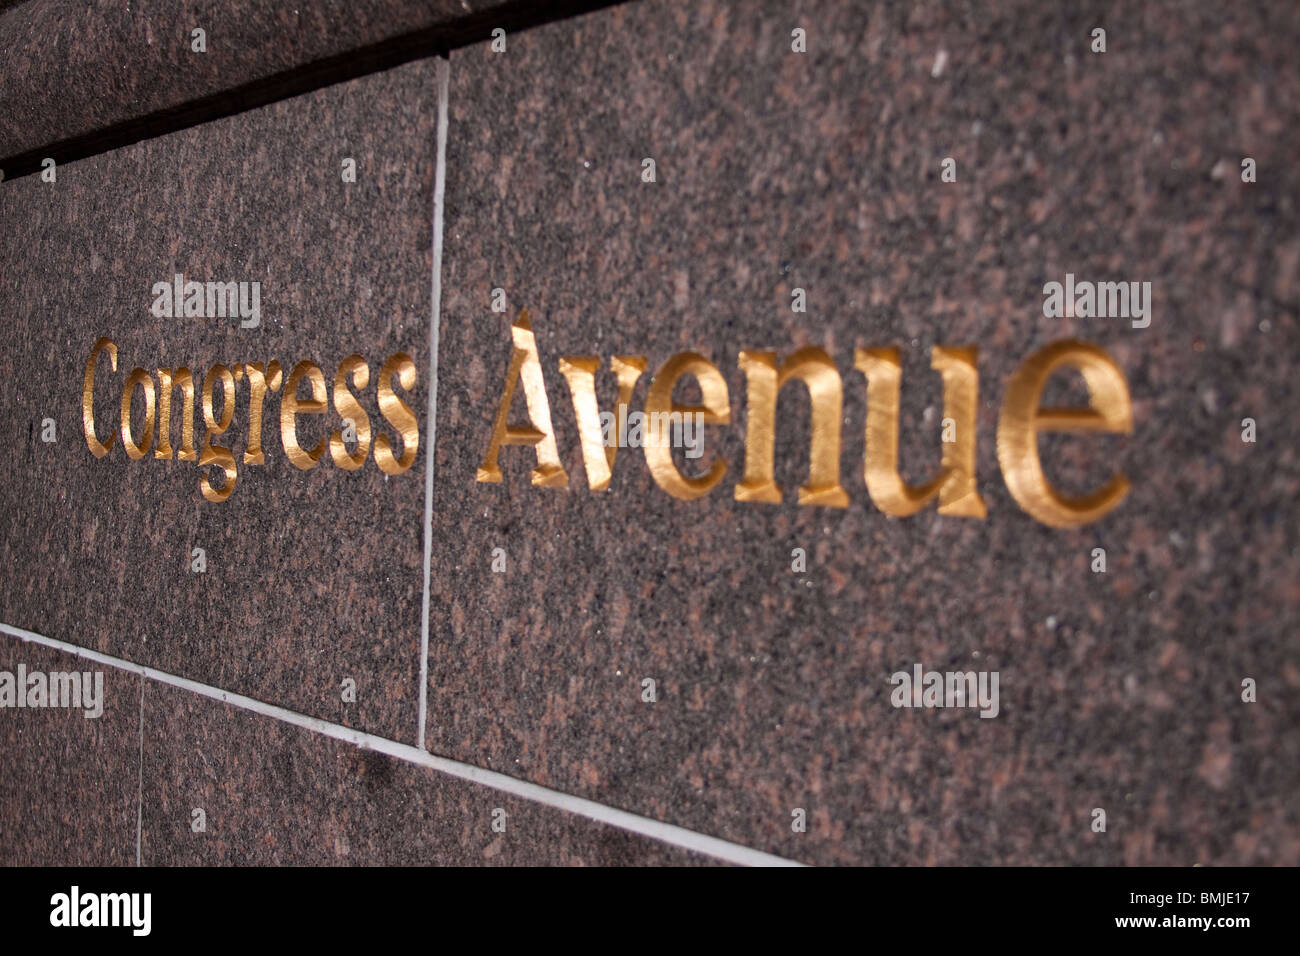 Congress Avenue sign embossed in gold into stone wall in Austin, Texas - Stock Image